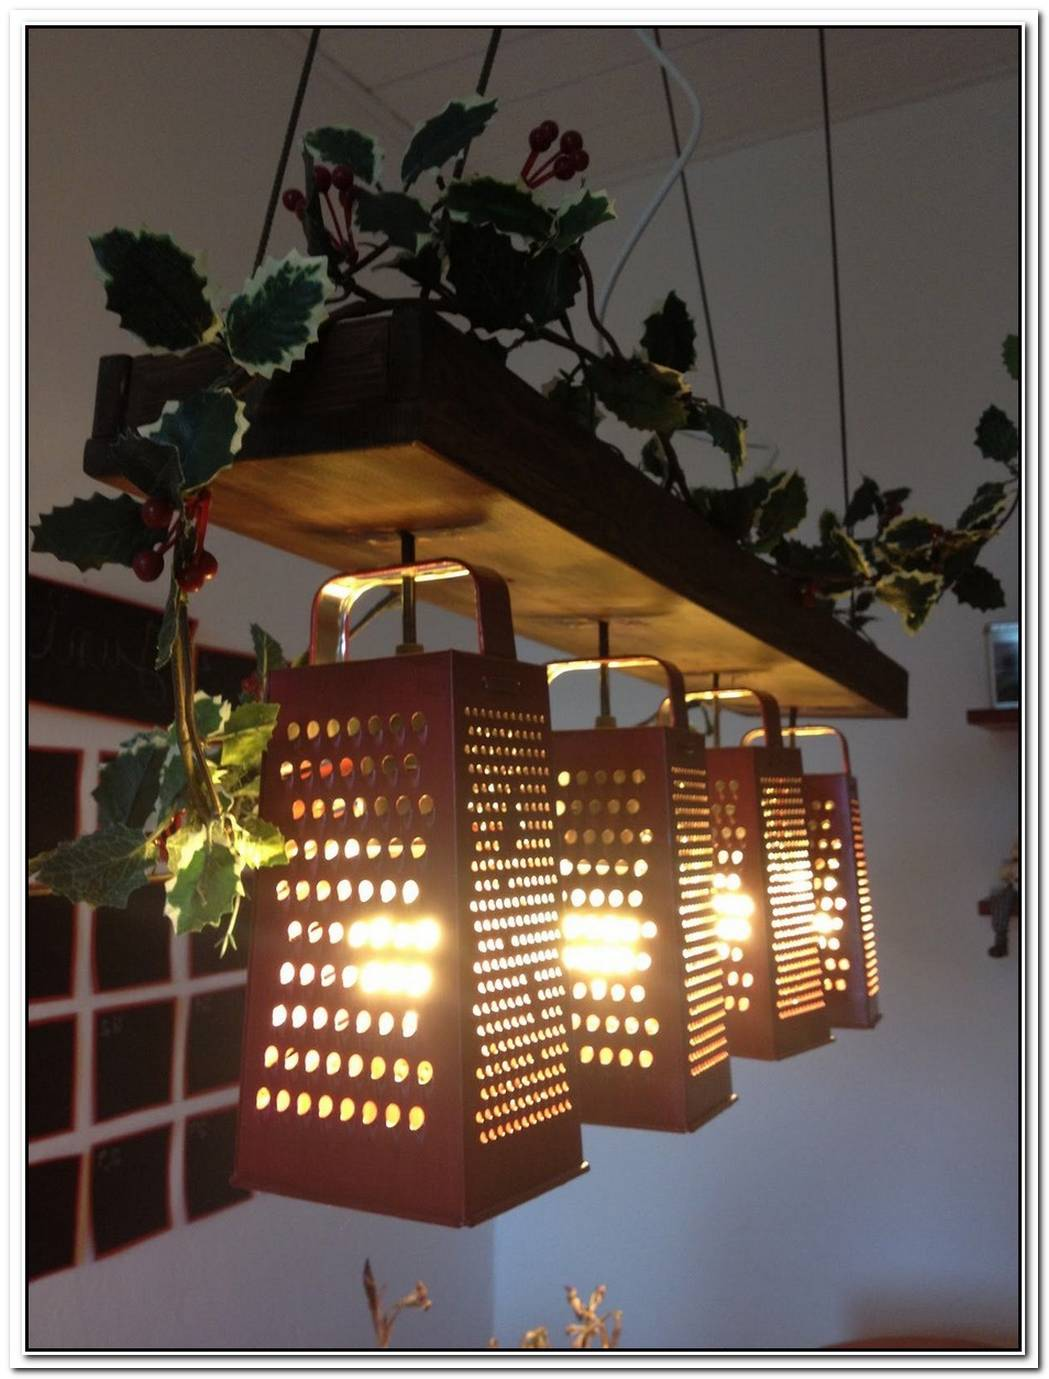 10 Recycling Light Designs